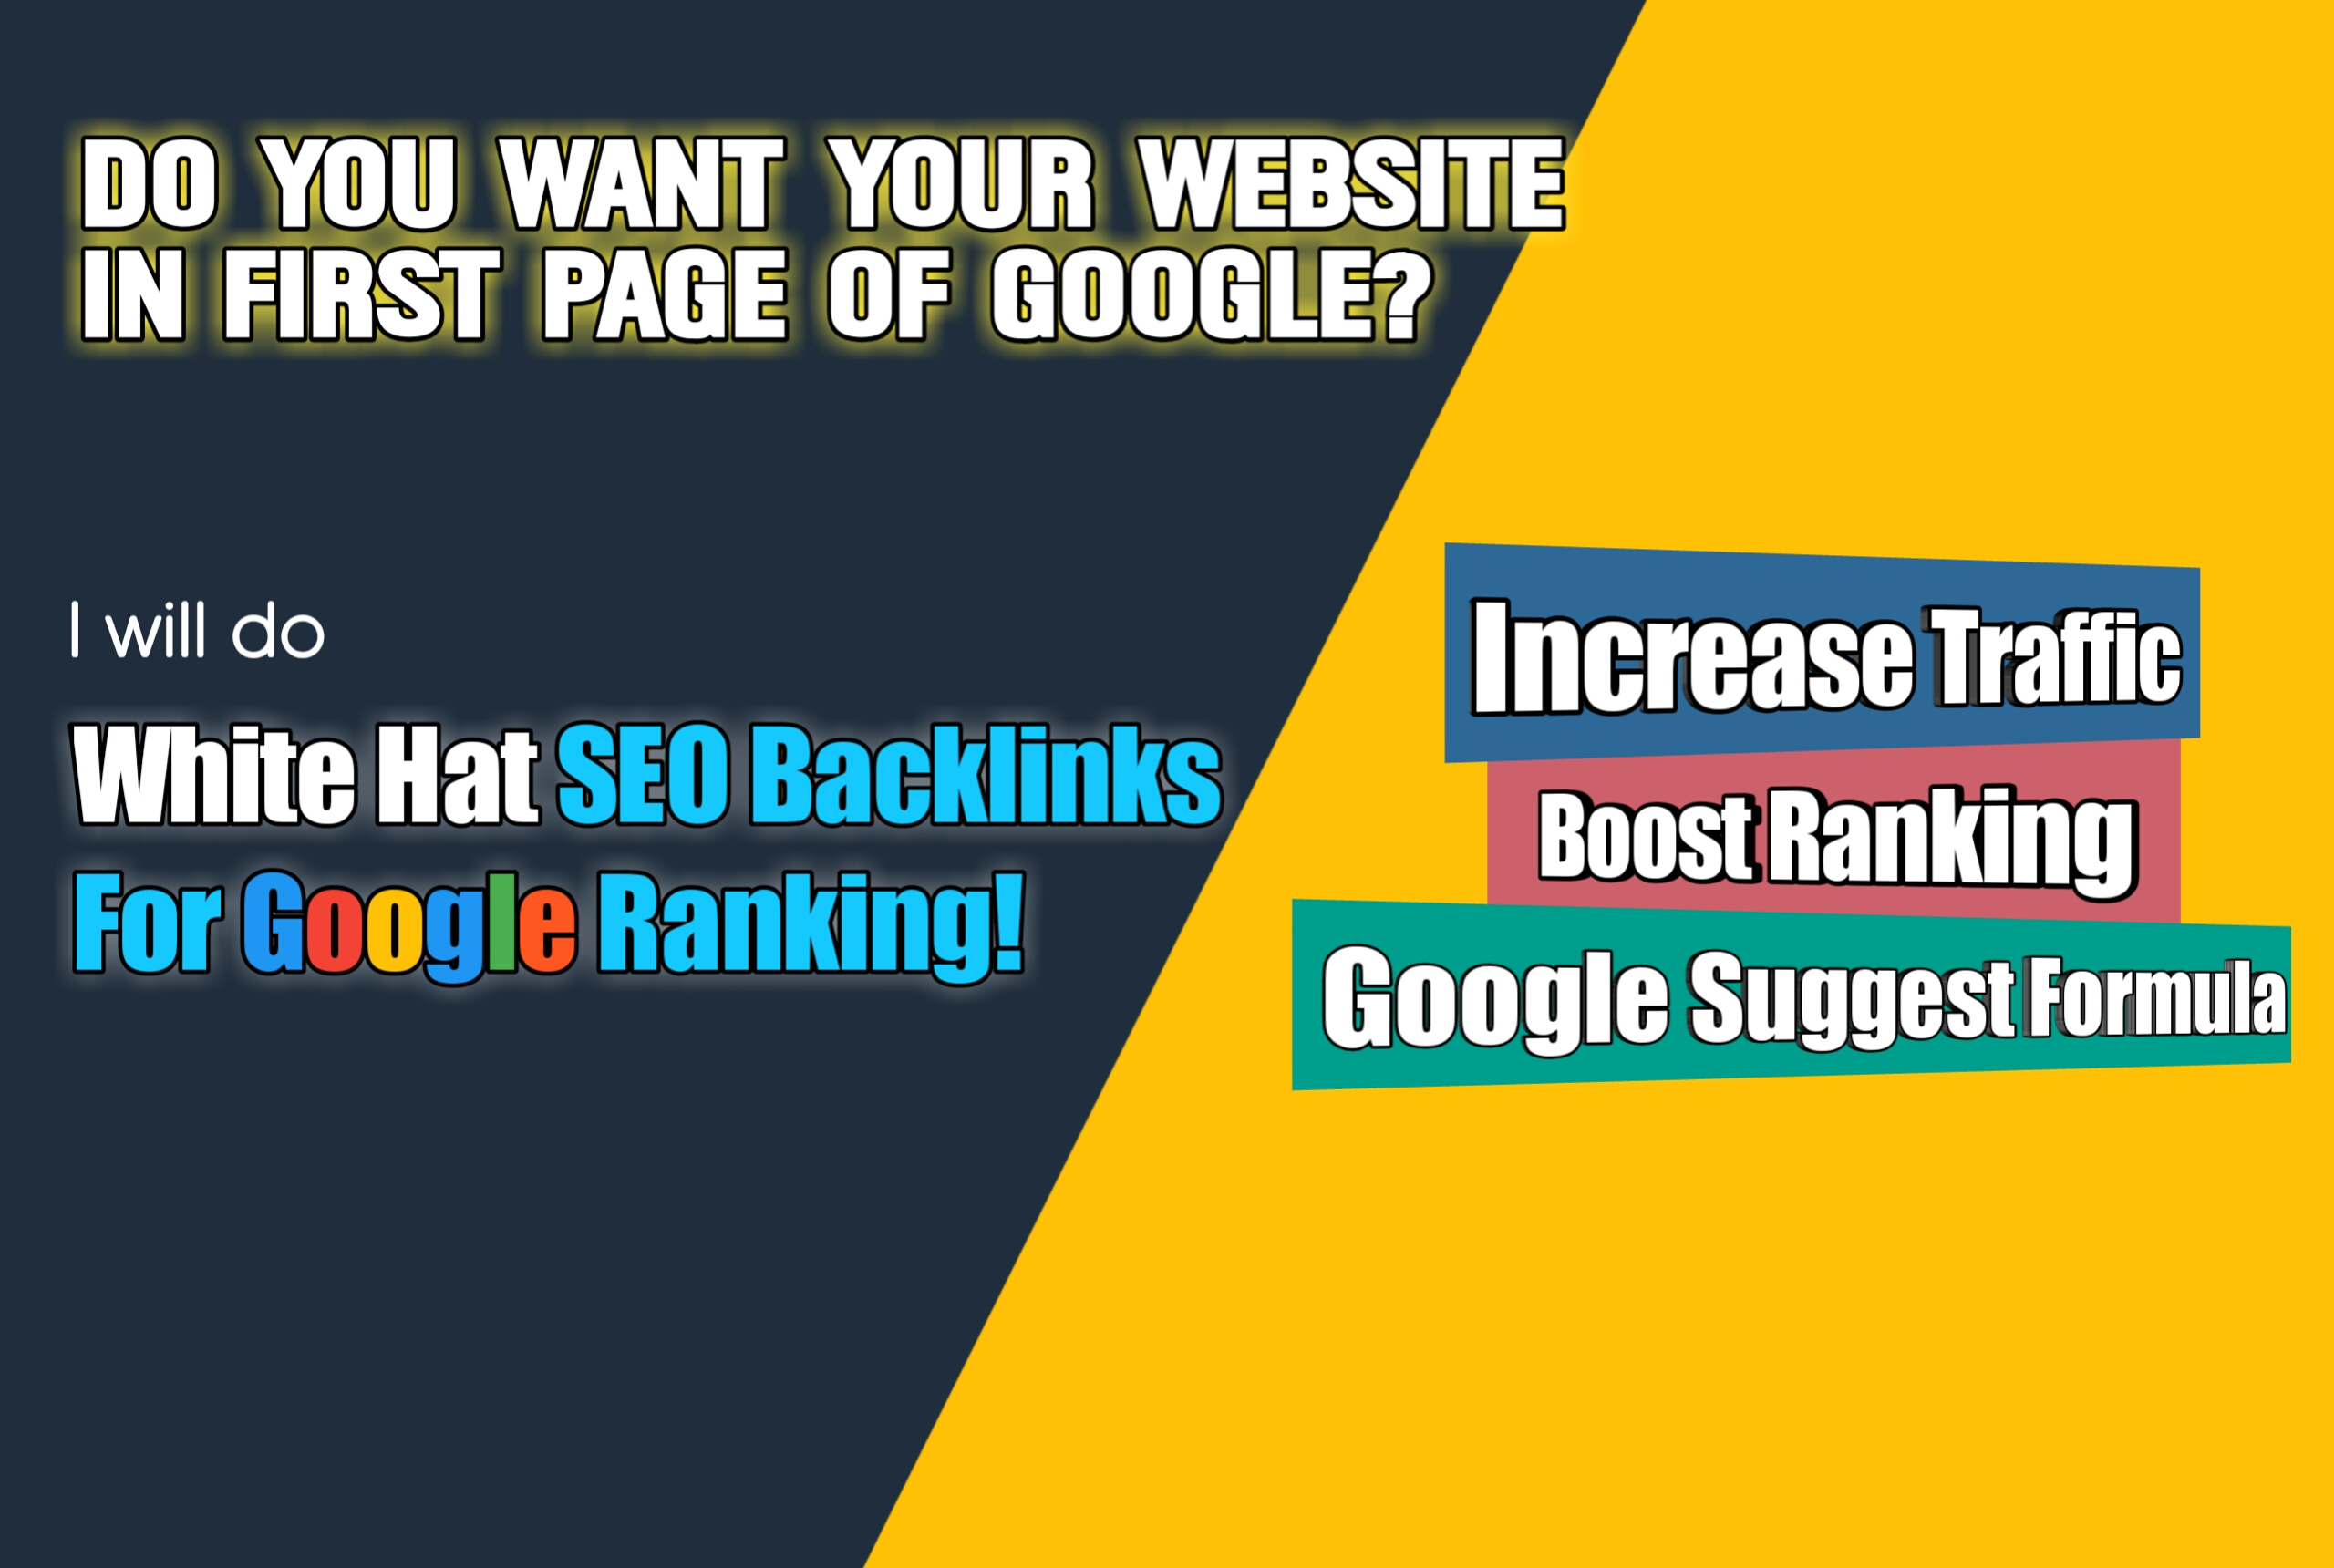 I will Rank your website in google with High Quality SEO Backlinks